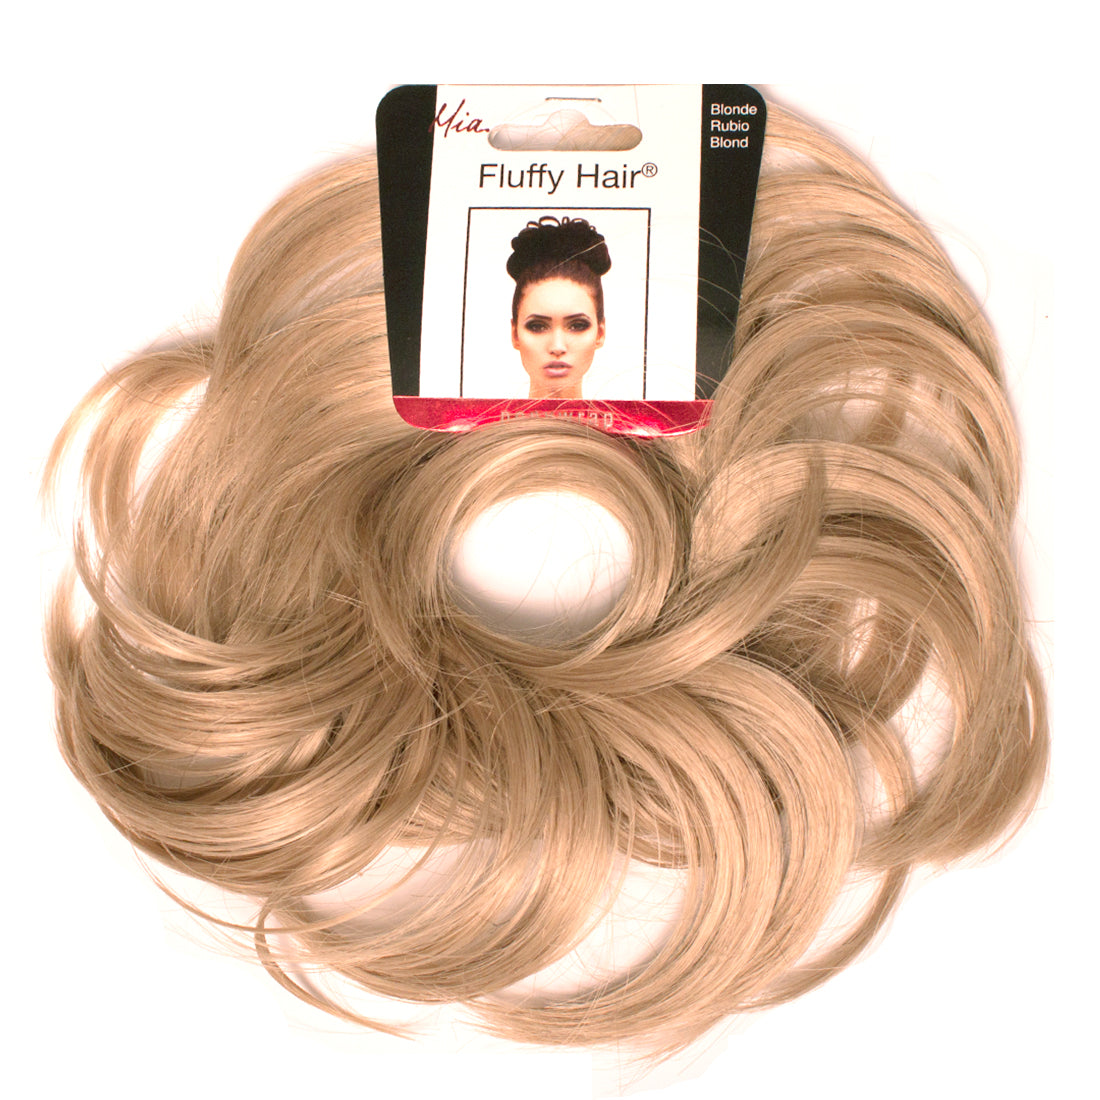 Mia® Fluffy Hair Ponywrap on packaging - blonde color - #MiaKaminski of #MiaBeauty